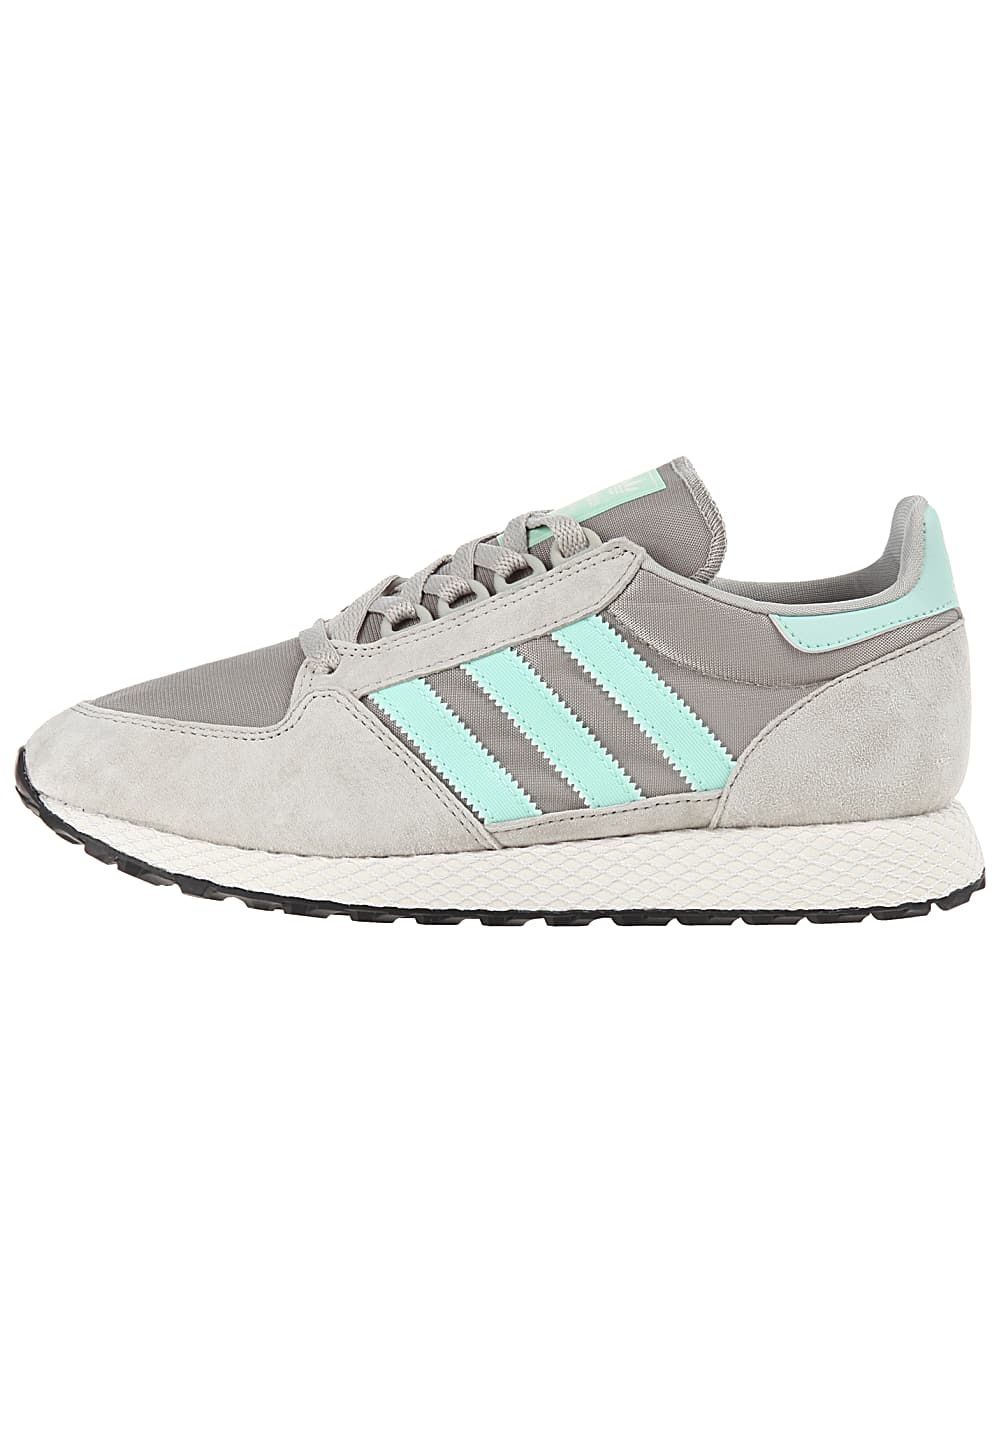 adidas Originals Forest Grove - Sneaker für Damen - Grau ...